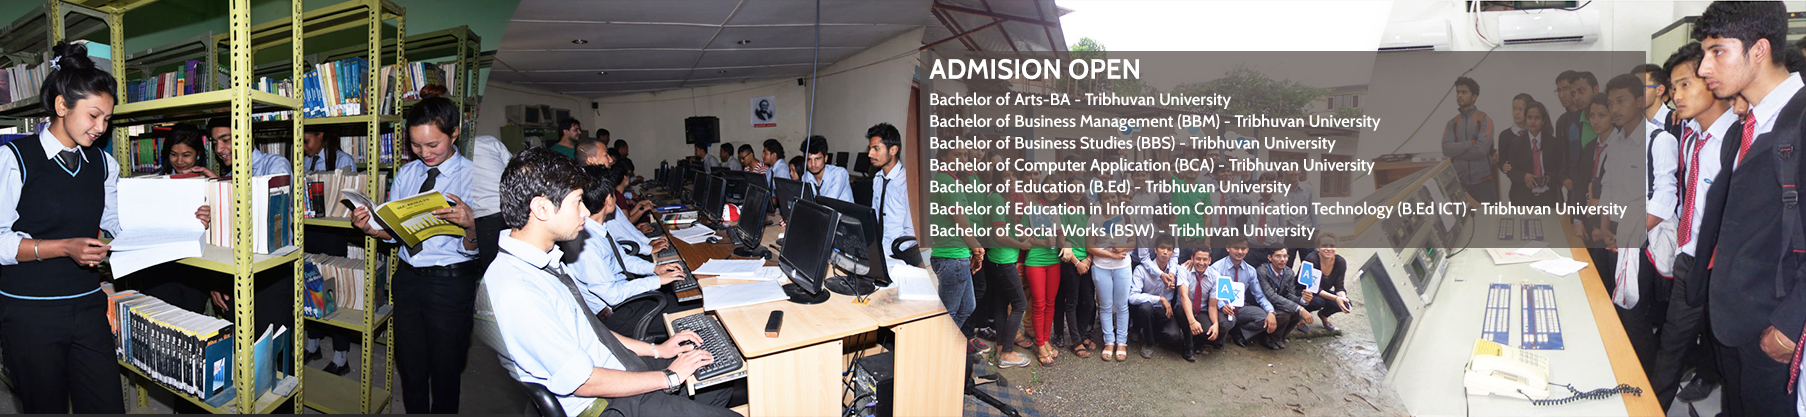 Admission open at Janamaitri Multiple Campus for Bachelor level programs